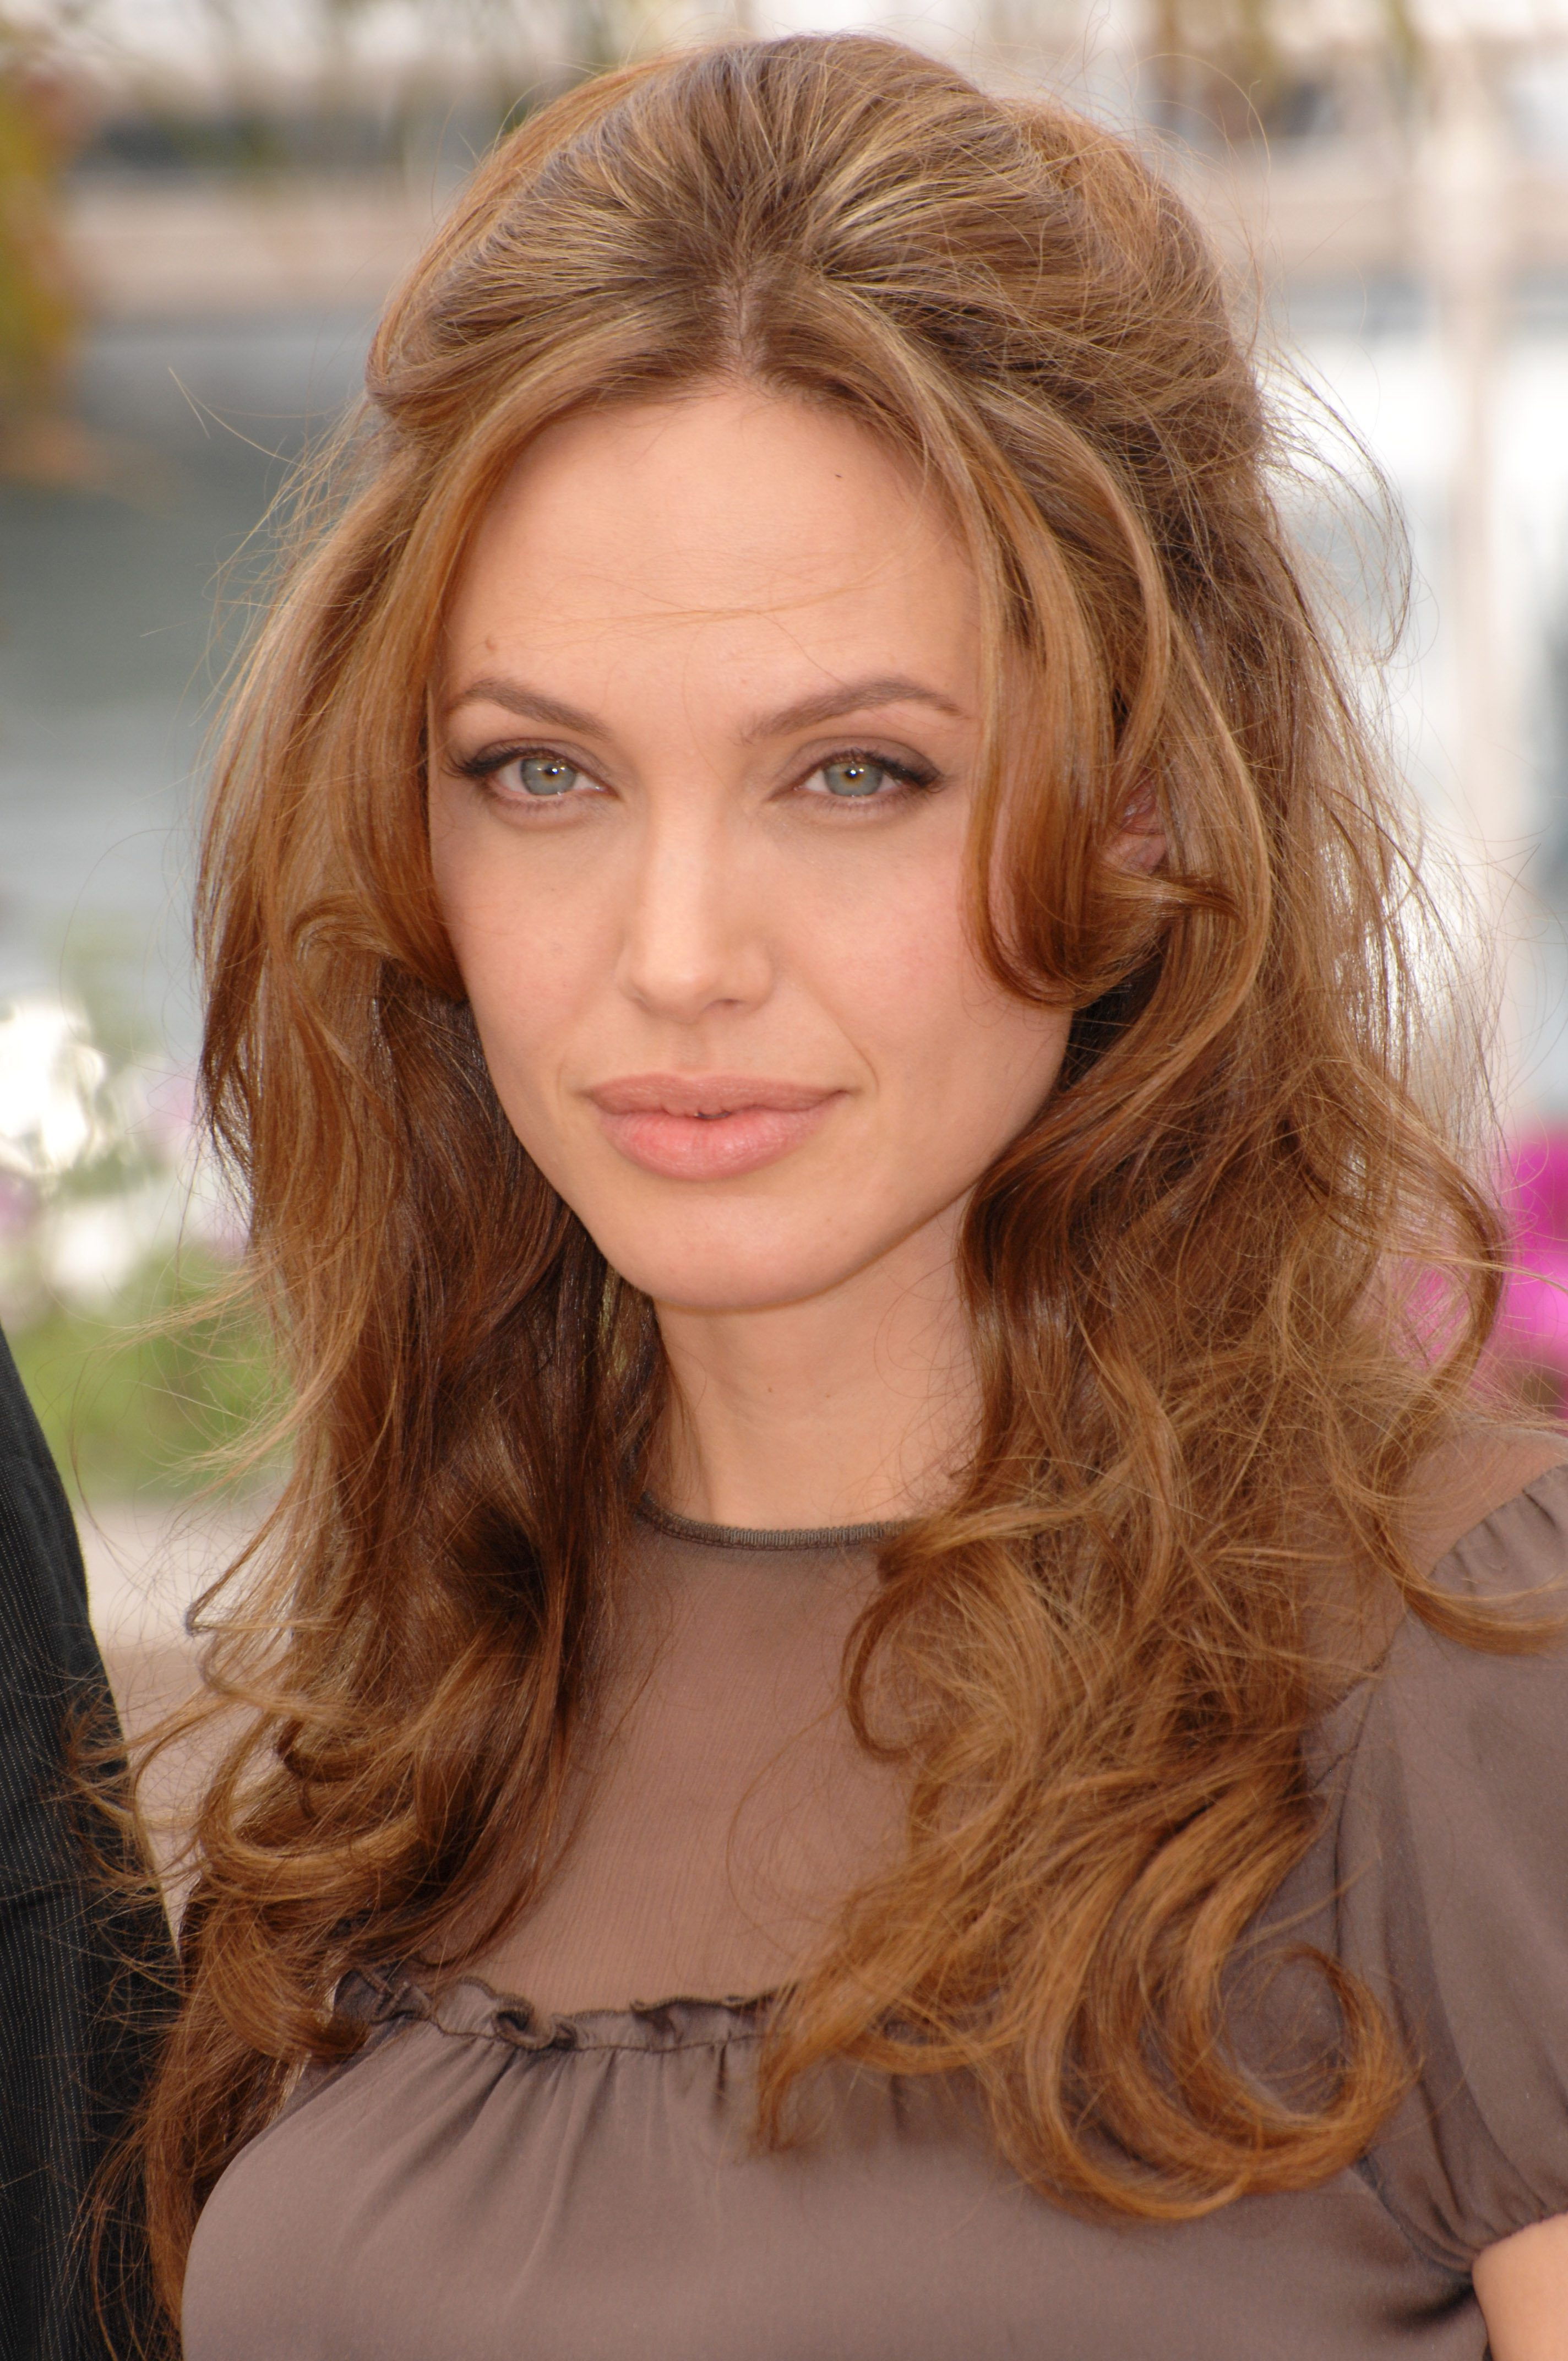 Angelina Jolie's Loose Curls with Puffy Top